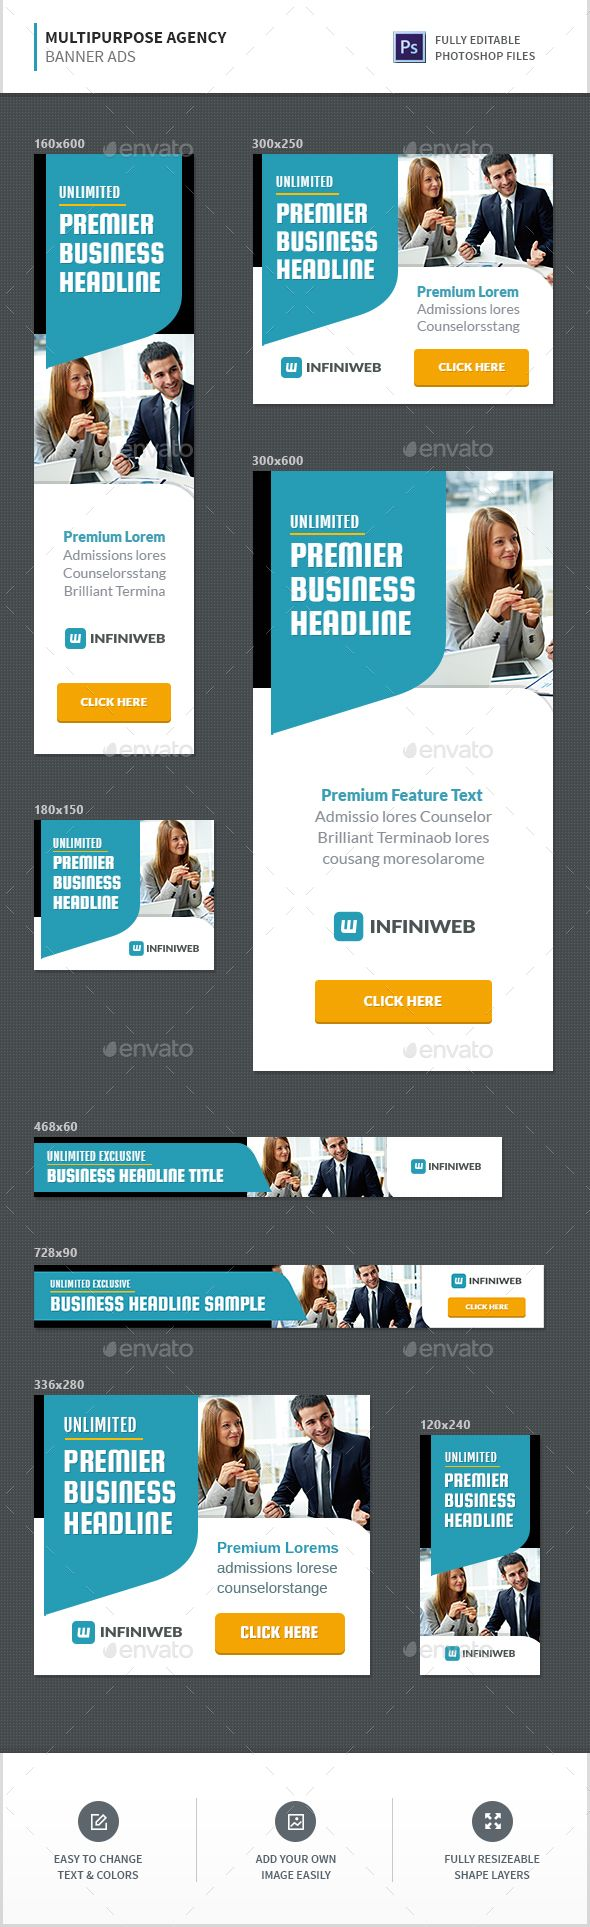 Multipurpose Agency Banners Design Template – Banners & Ads Web Template PSD. Download here: graphicriver.net/…